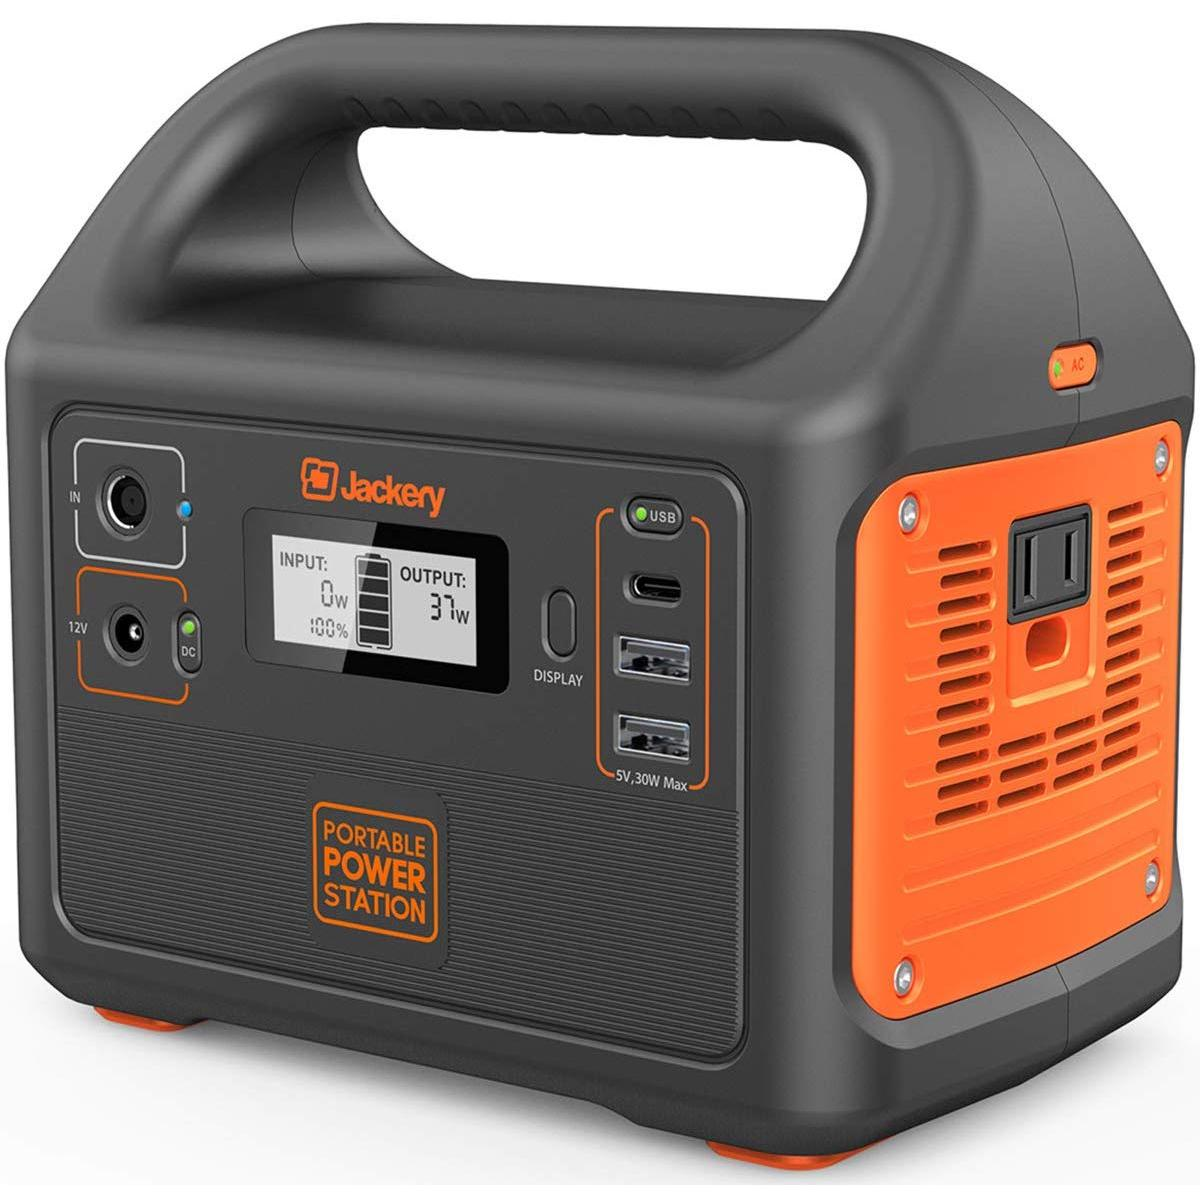 Portable Power Station - Jackery Generator Explorer 160